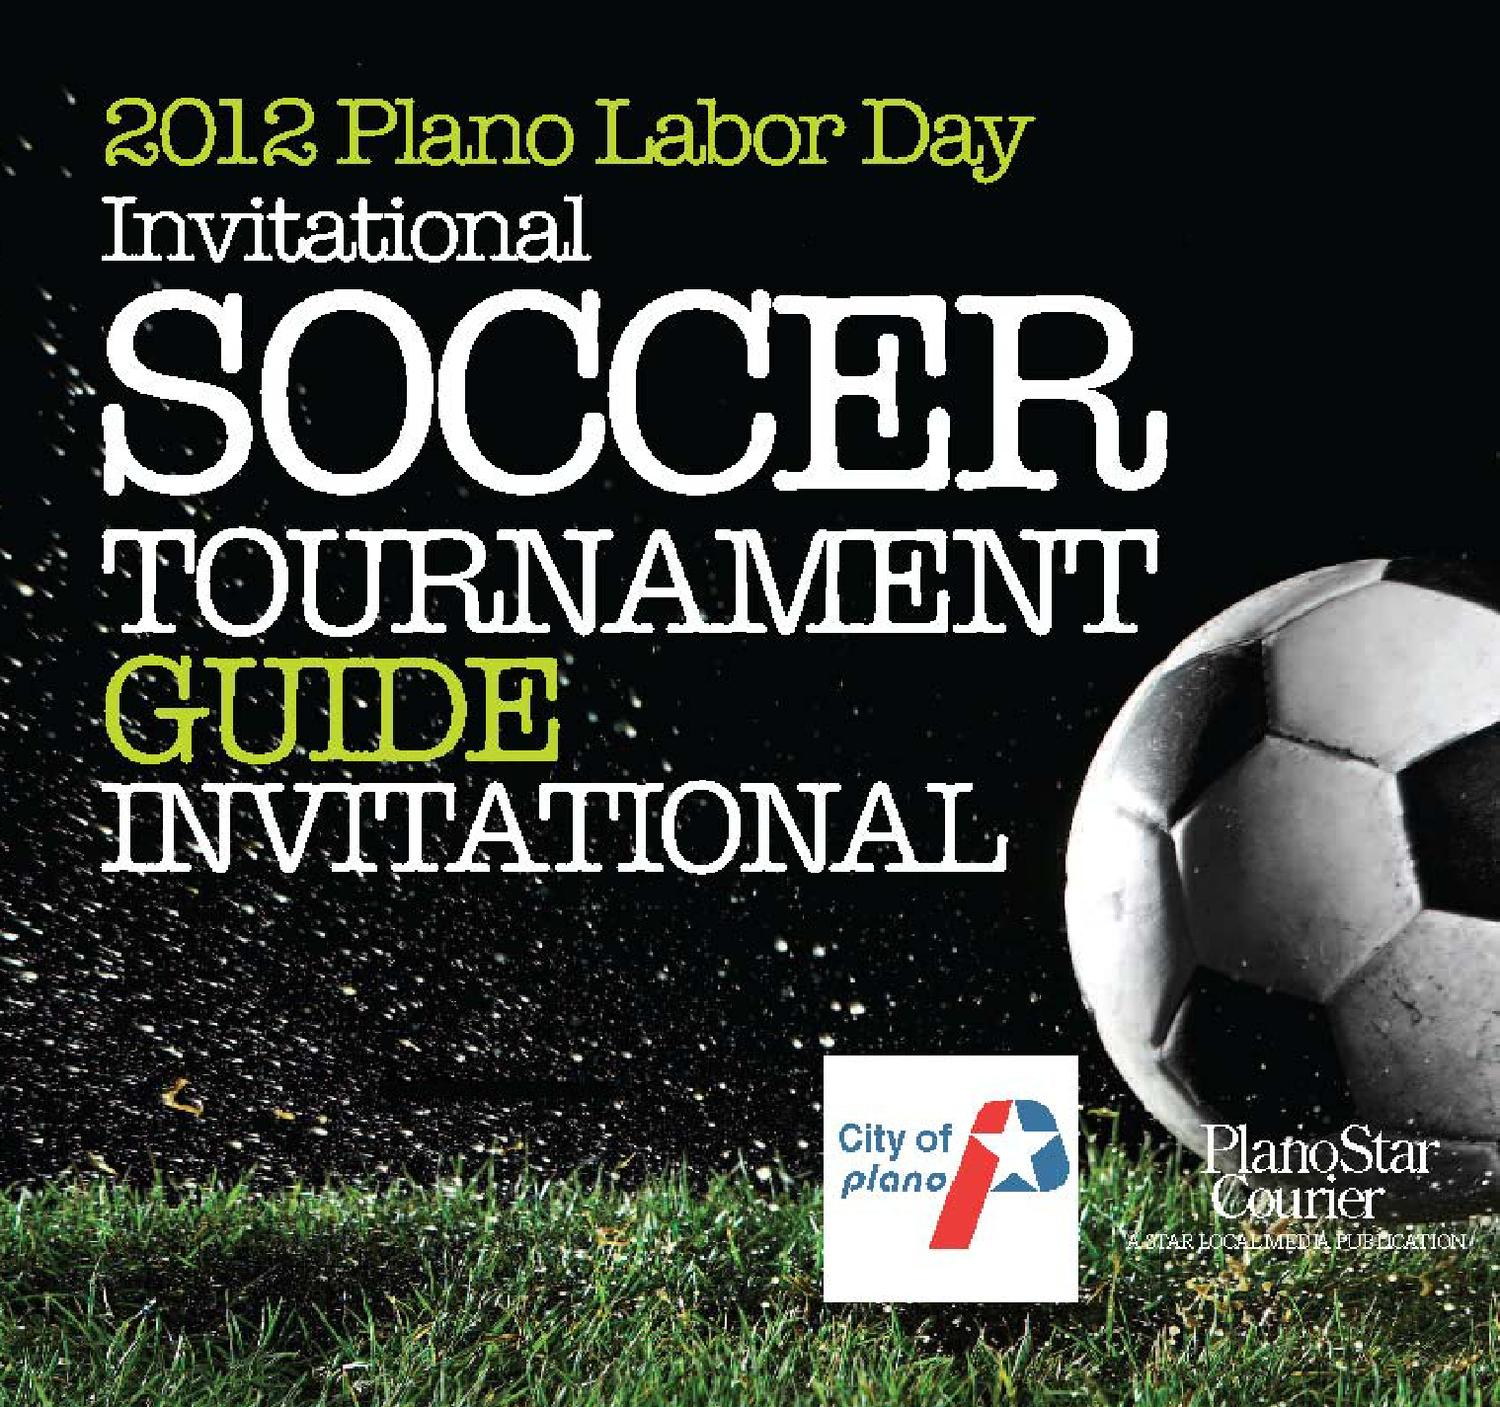 2012 Plano Labor Day Invitational Soccer Tournament By Nick Souders